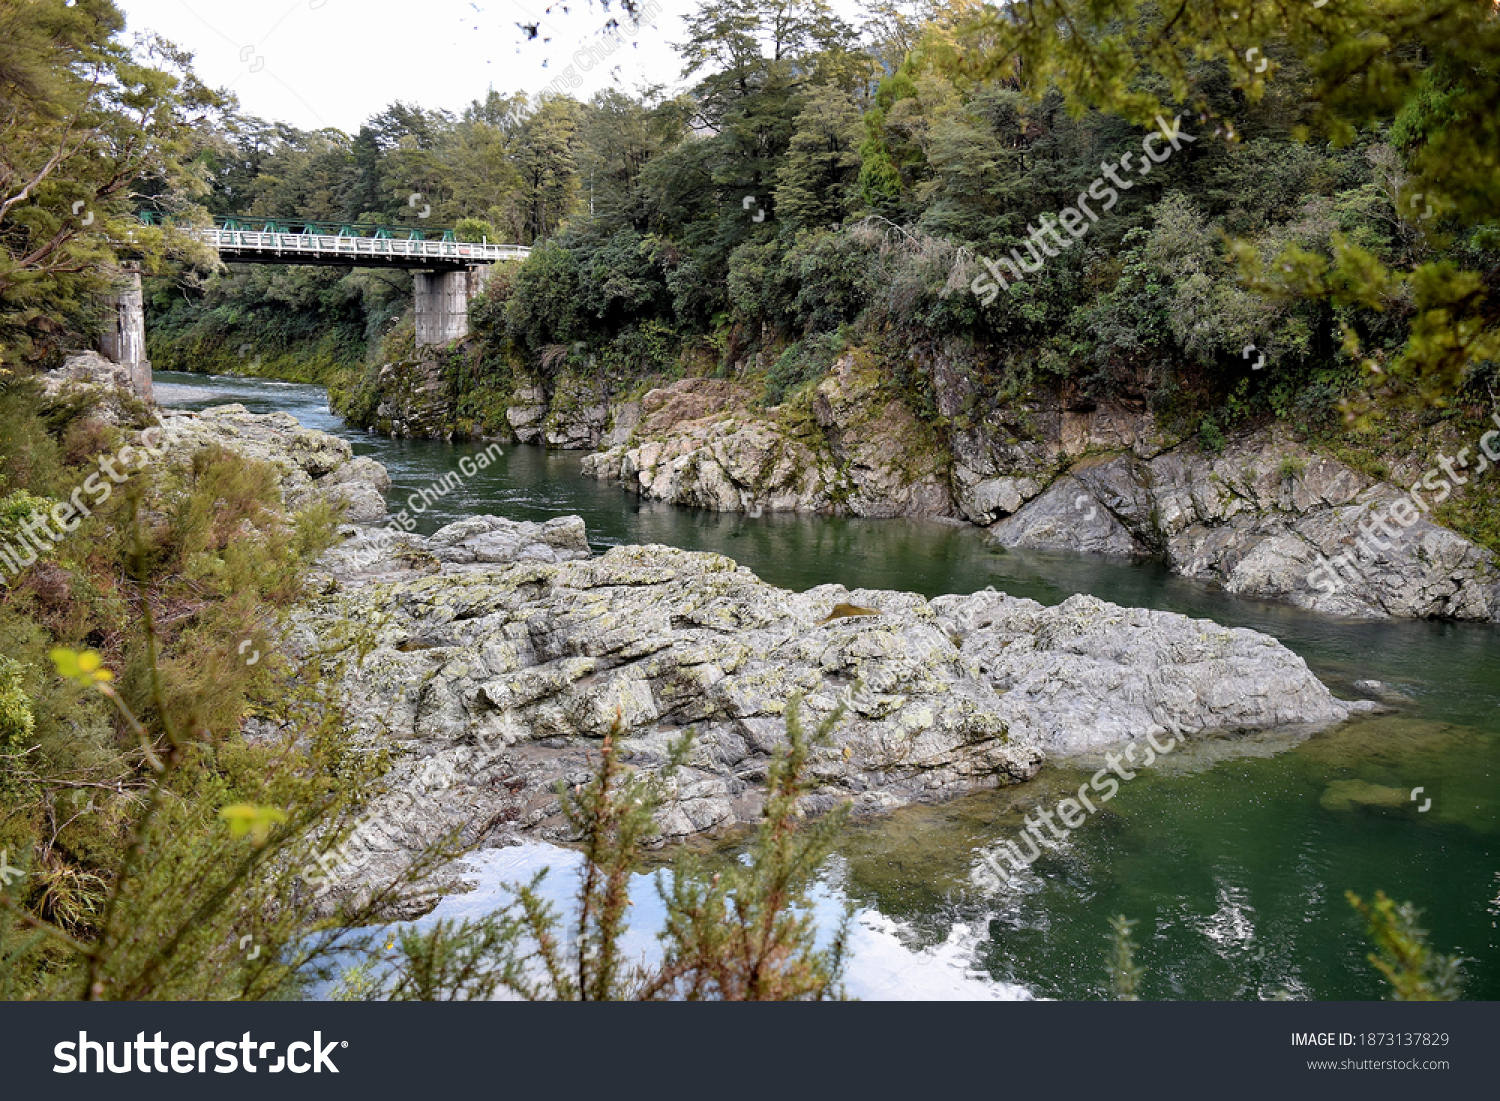 Green waters of Pelorus River flows through the scenic reserves in Marlborough region.  #1873137829